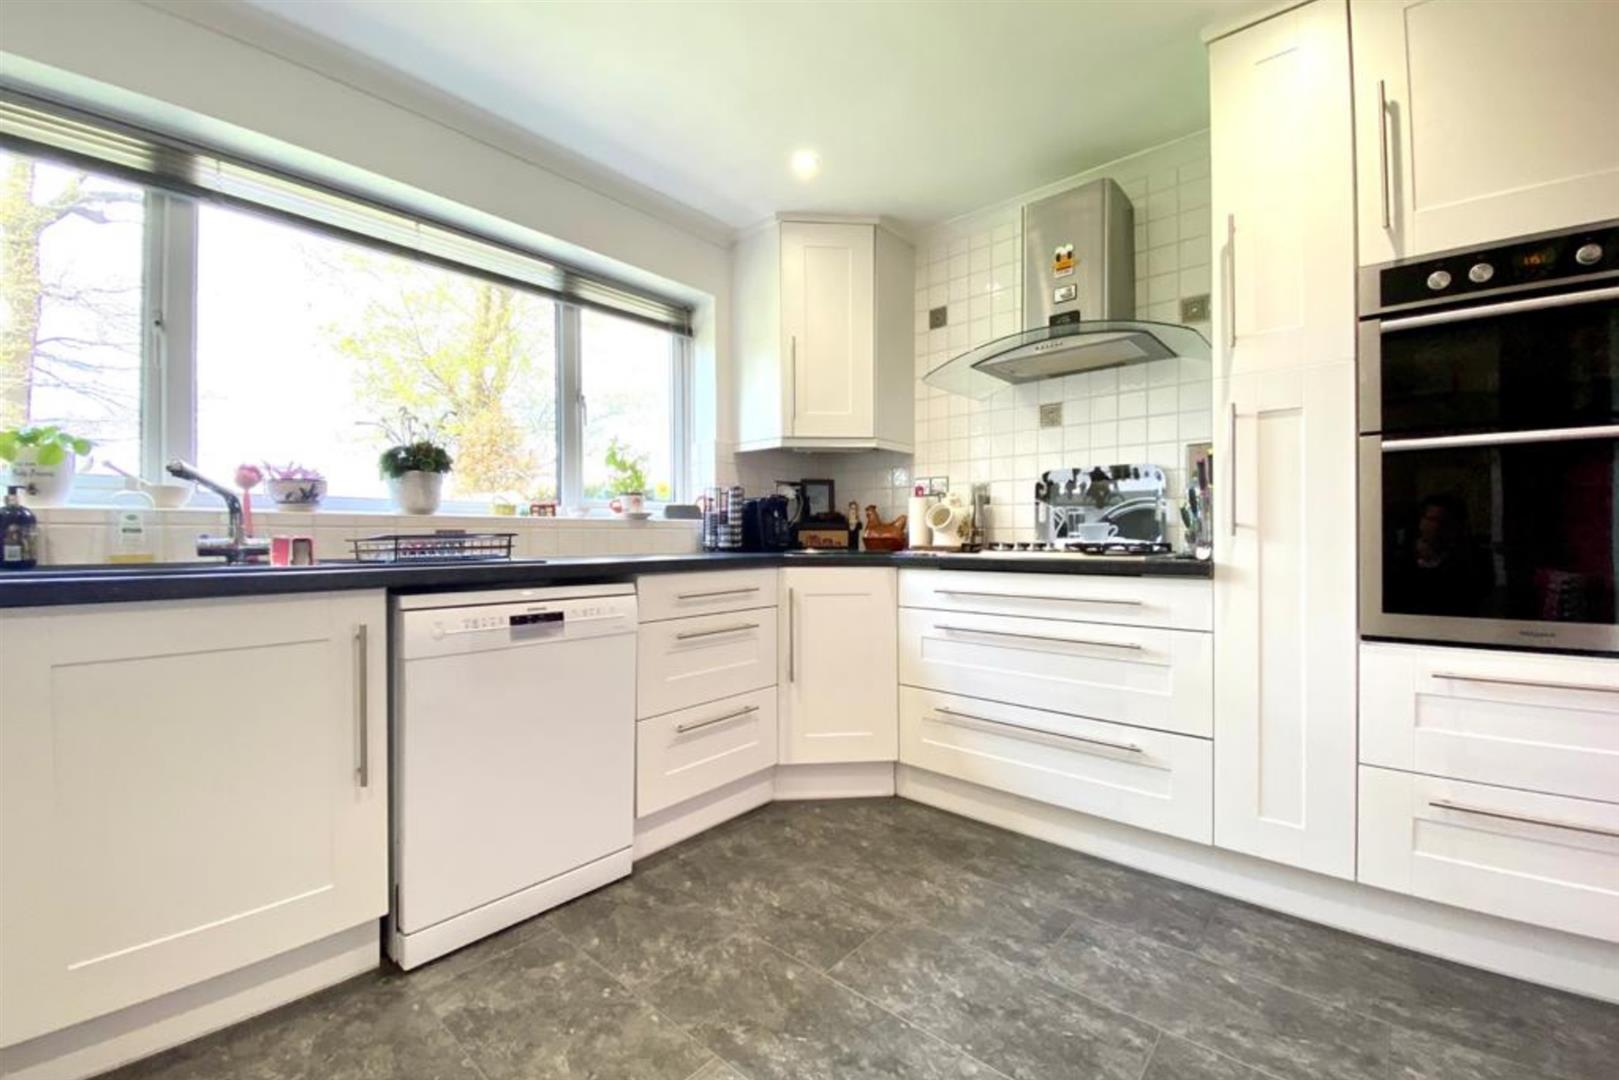 4 bed detached for sale in Winnersh  - Property Image 6